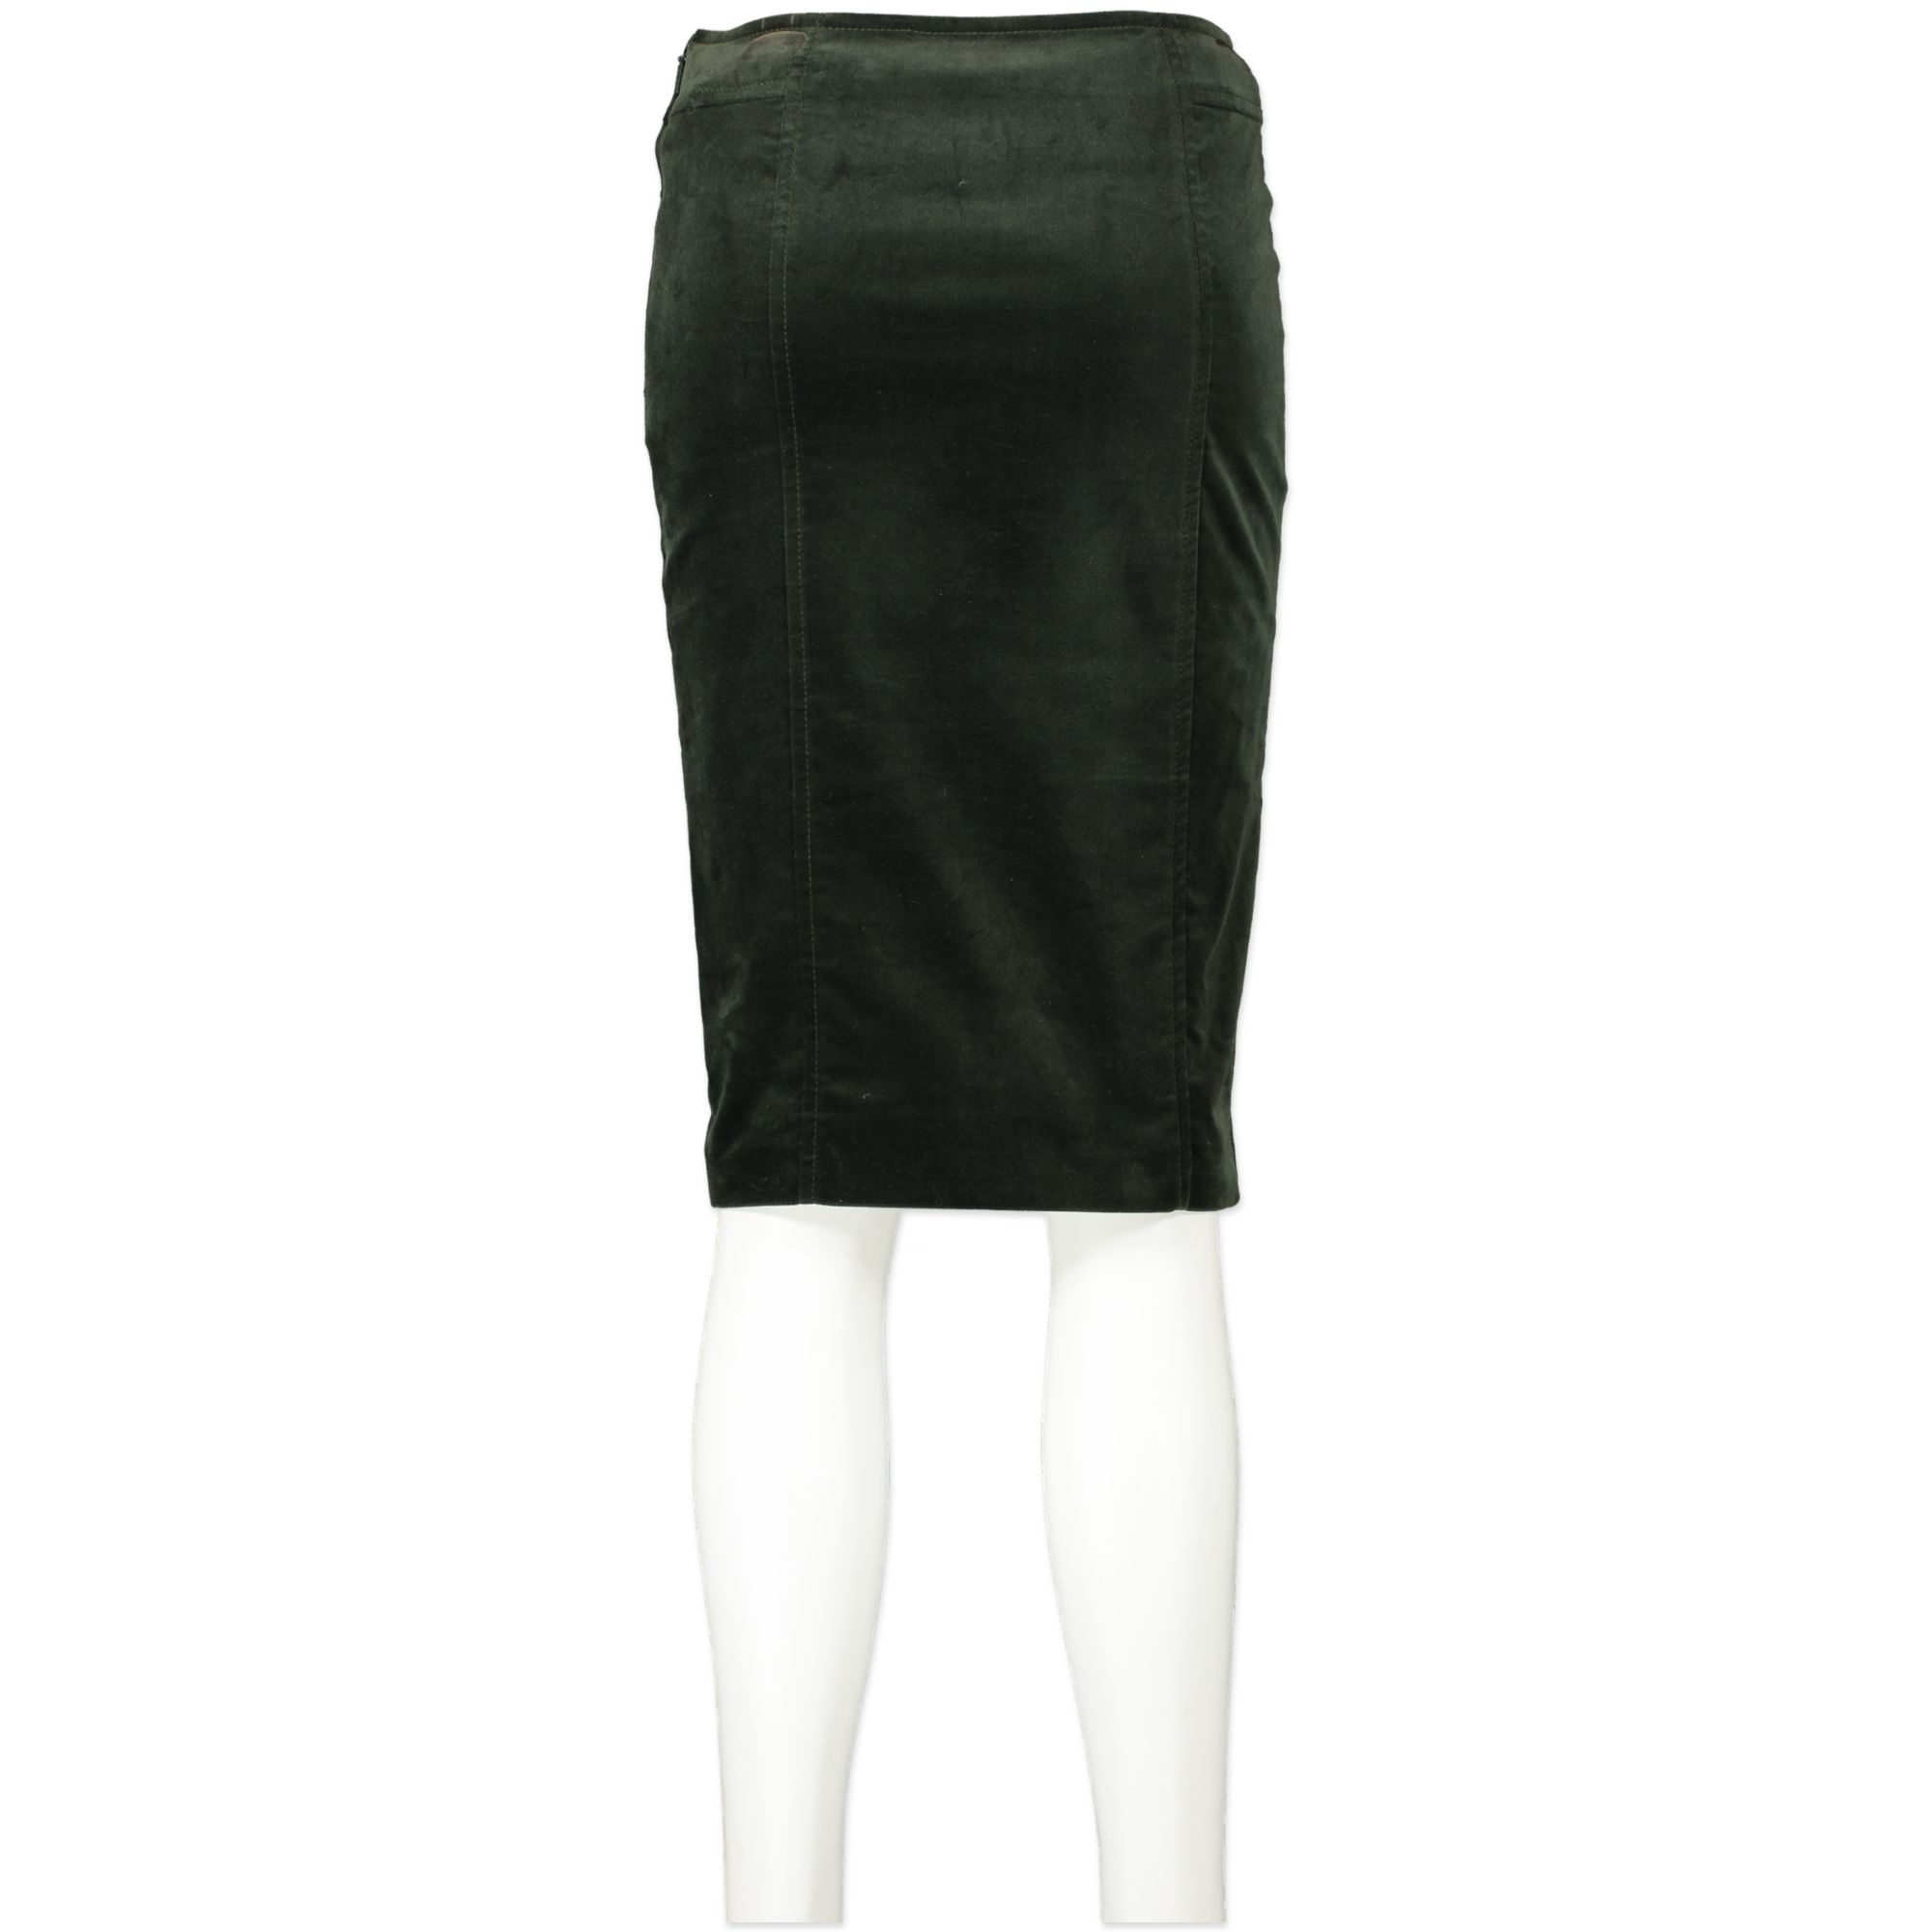 Gucci Forest Green Velvet Midi Pencil Skirt - IT 38